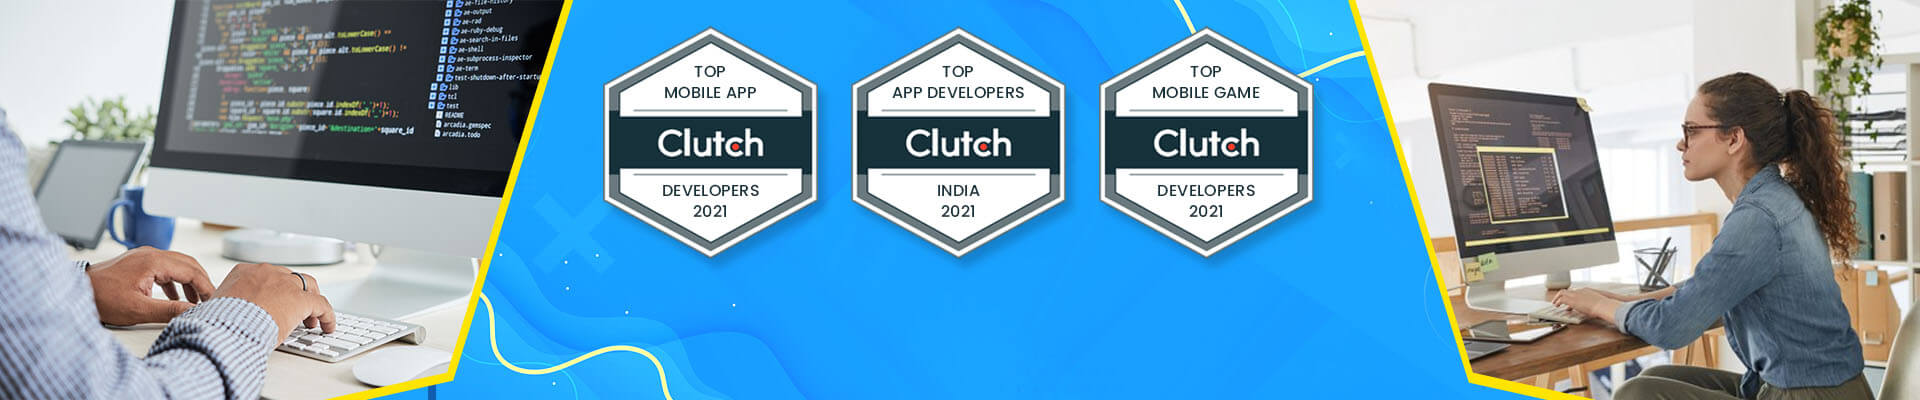 AGS Ranked As Top Game Developers, Top App Developers & Top Mobile App Development company For 2021 By Clutch